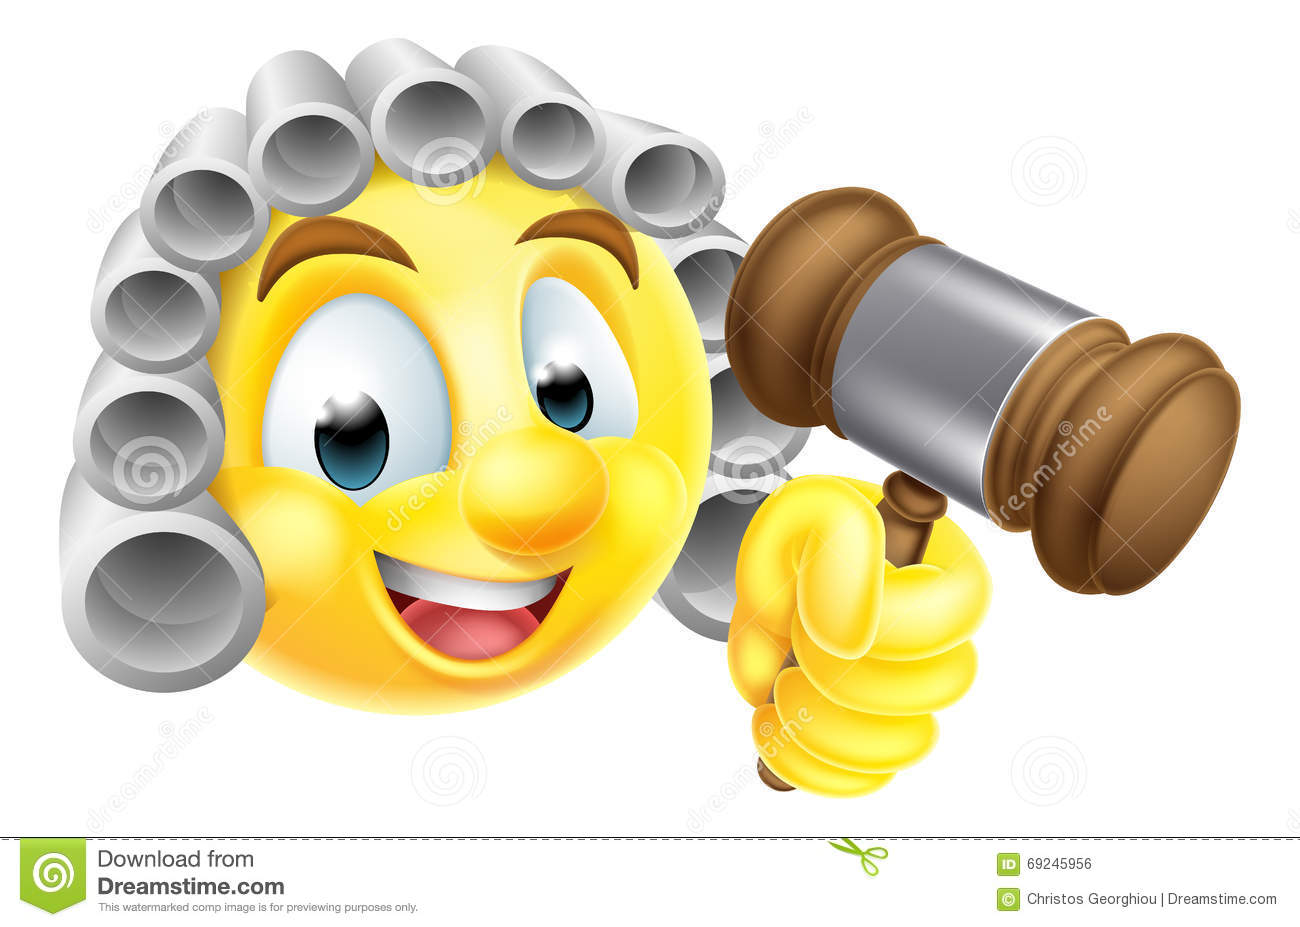 ... emoji judge character in white wig holding wooden gavel hammer